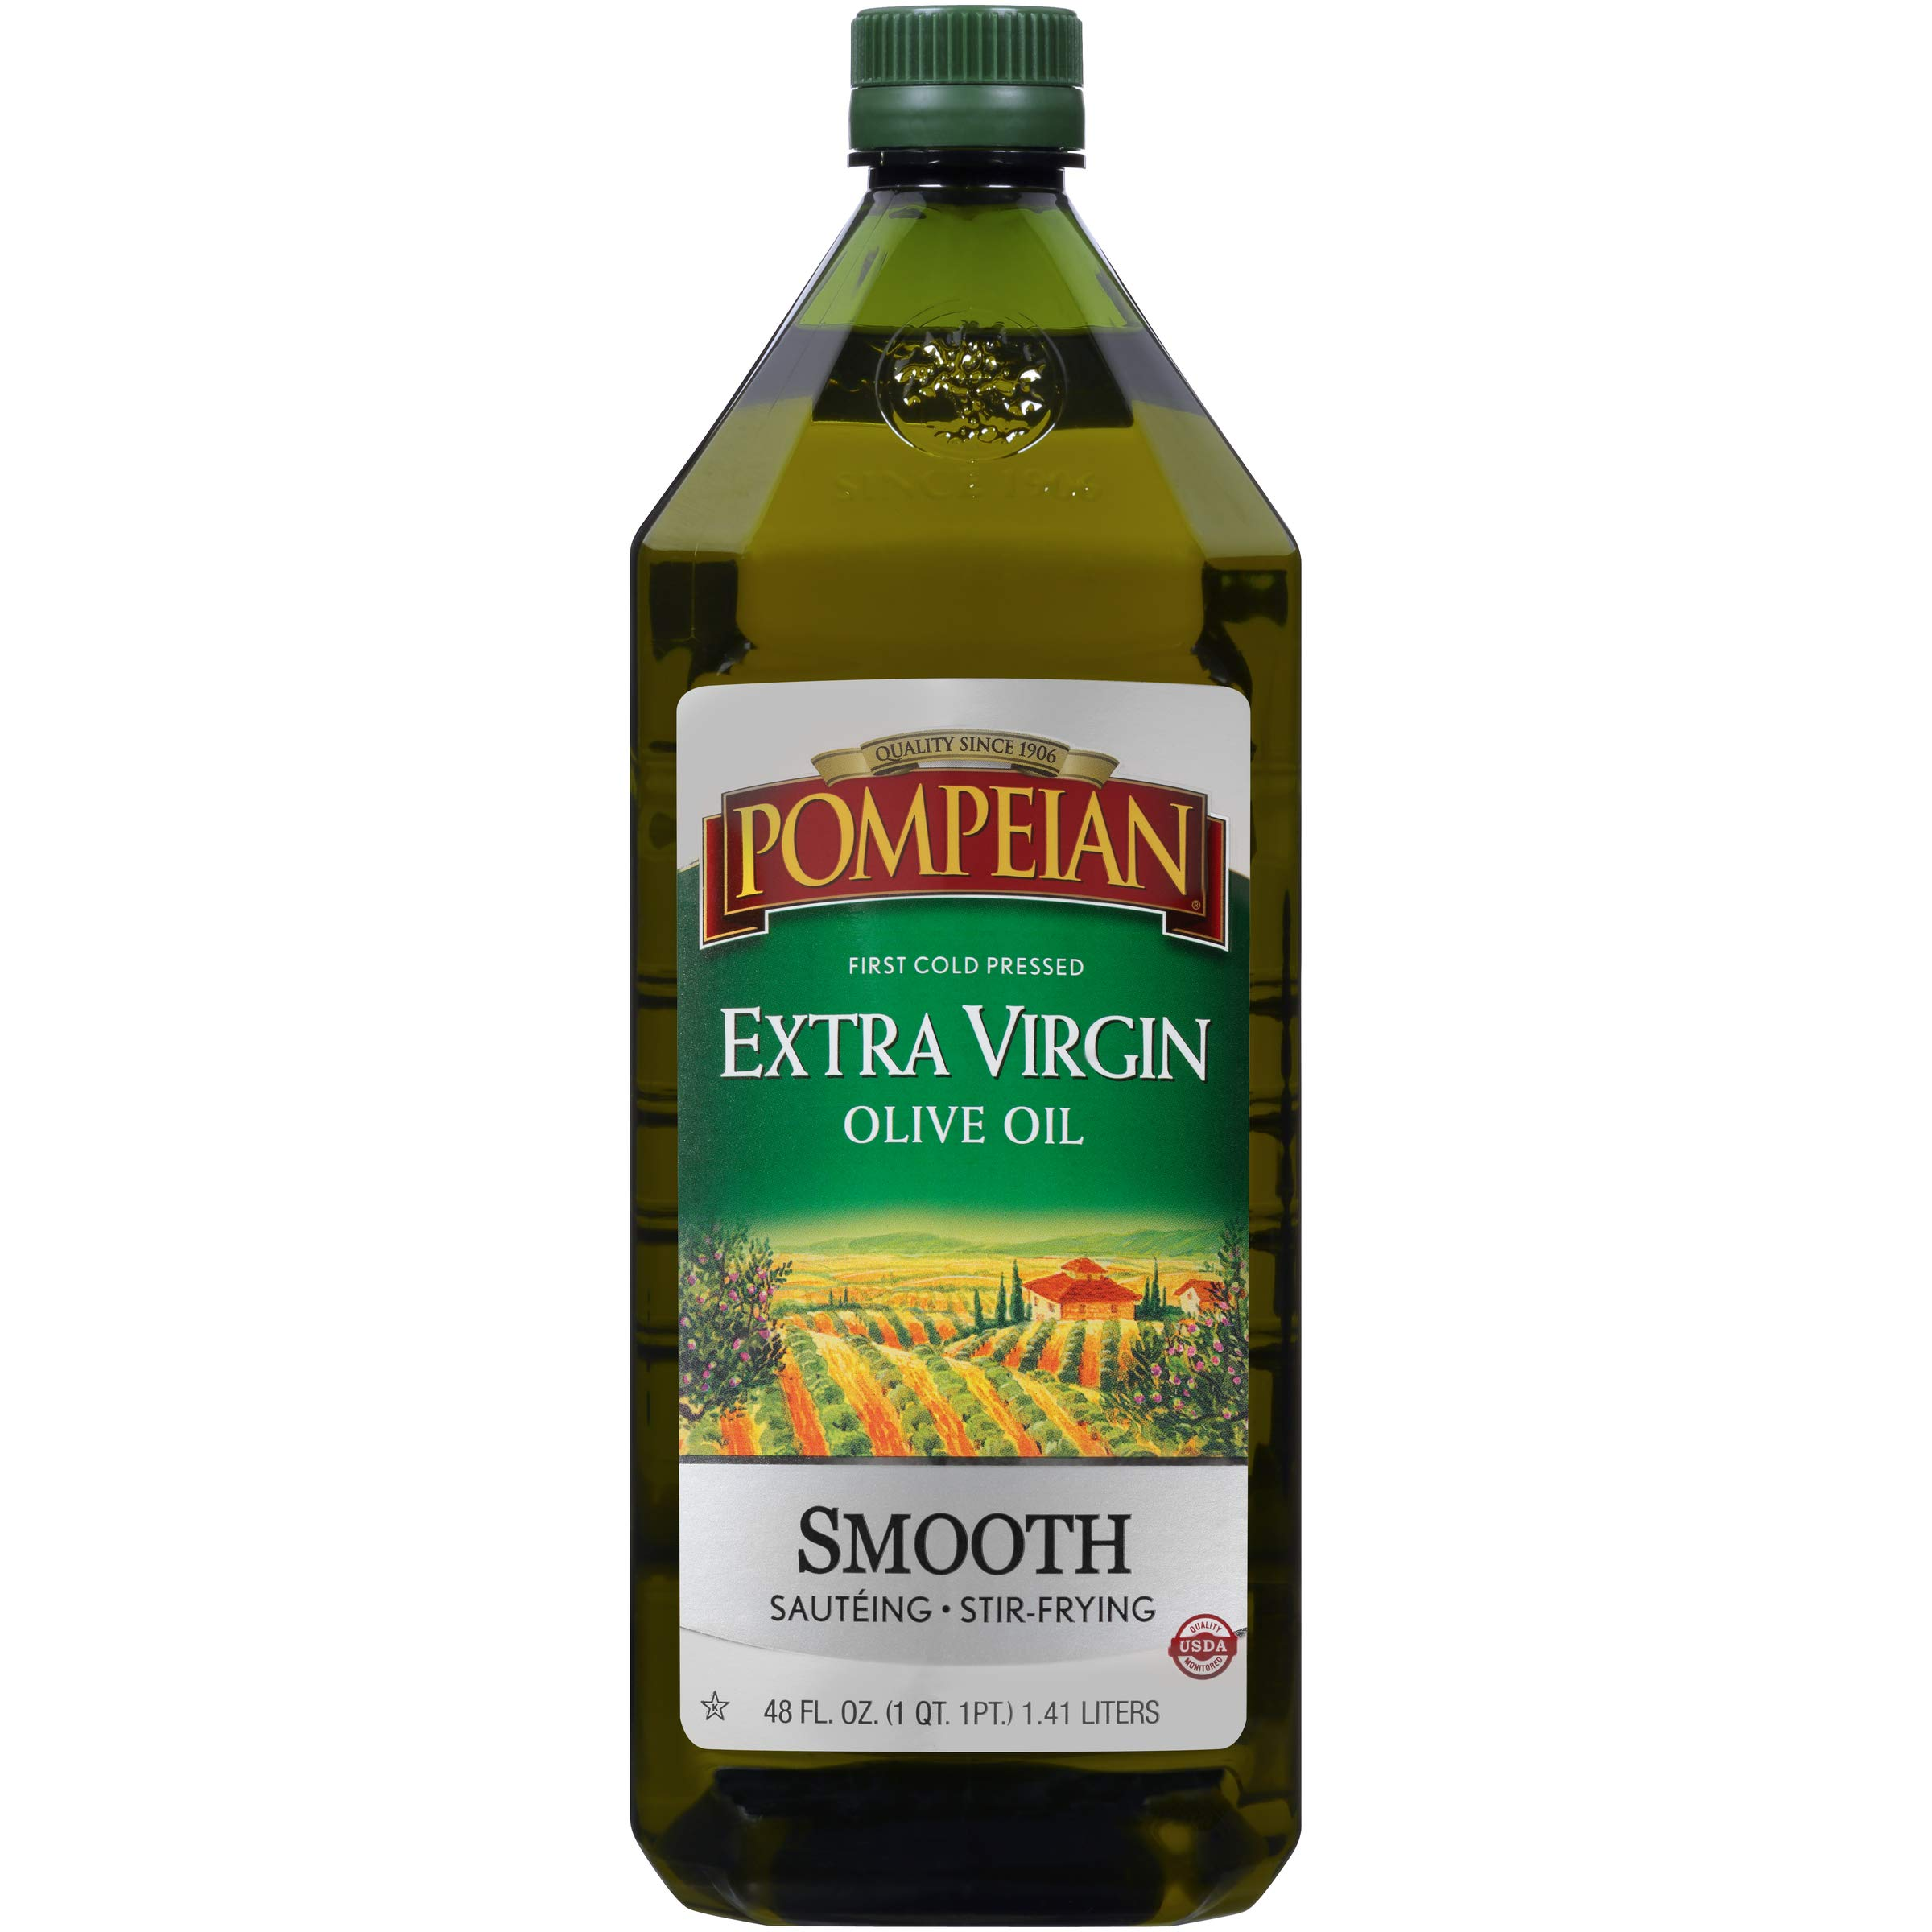 Pompeian Smooth Extra Virgin Olive Oil, First Cold Pressed, Mild and Delicate Flavor, Perfect for Sauteing and Stir-Frying, Naturally Gluten Free, Non-Allergenic, Non-GMO, 48 FL. OZ., Single Bottle